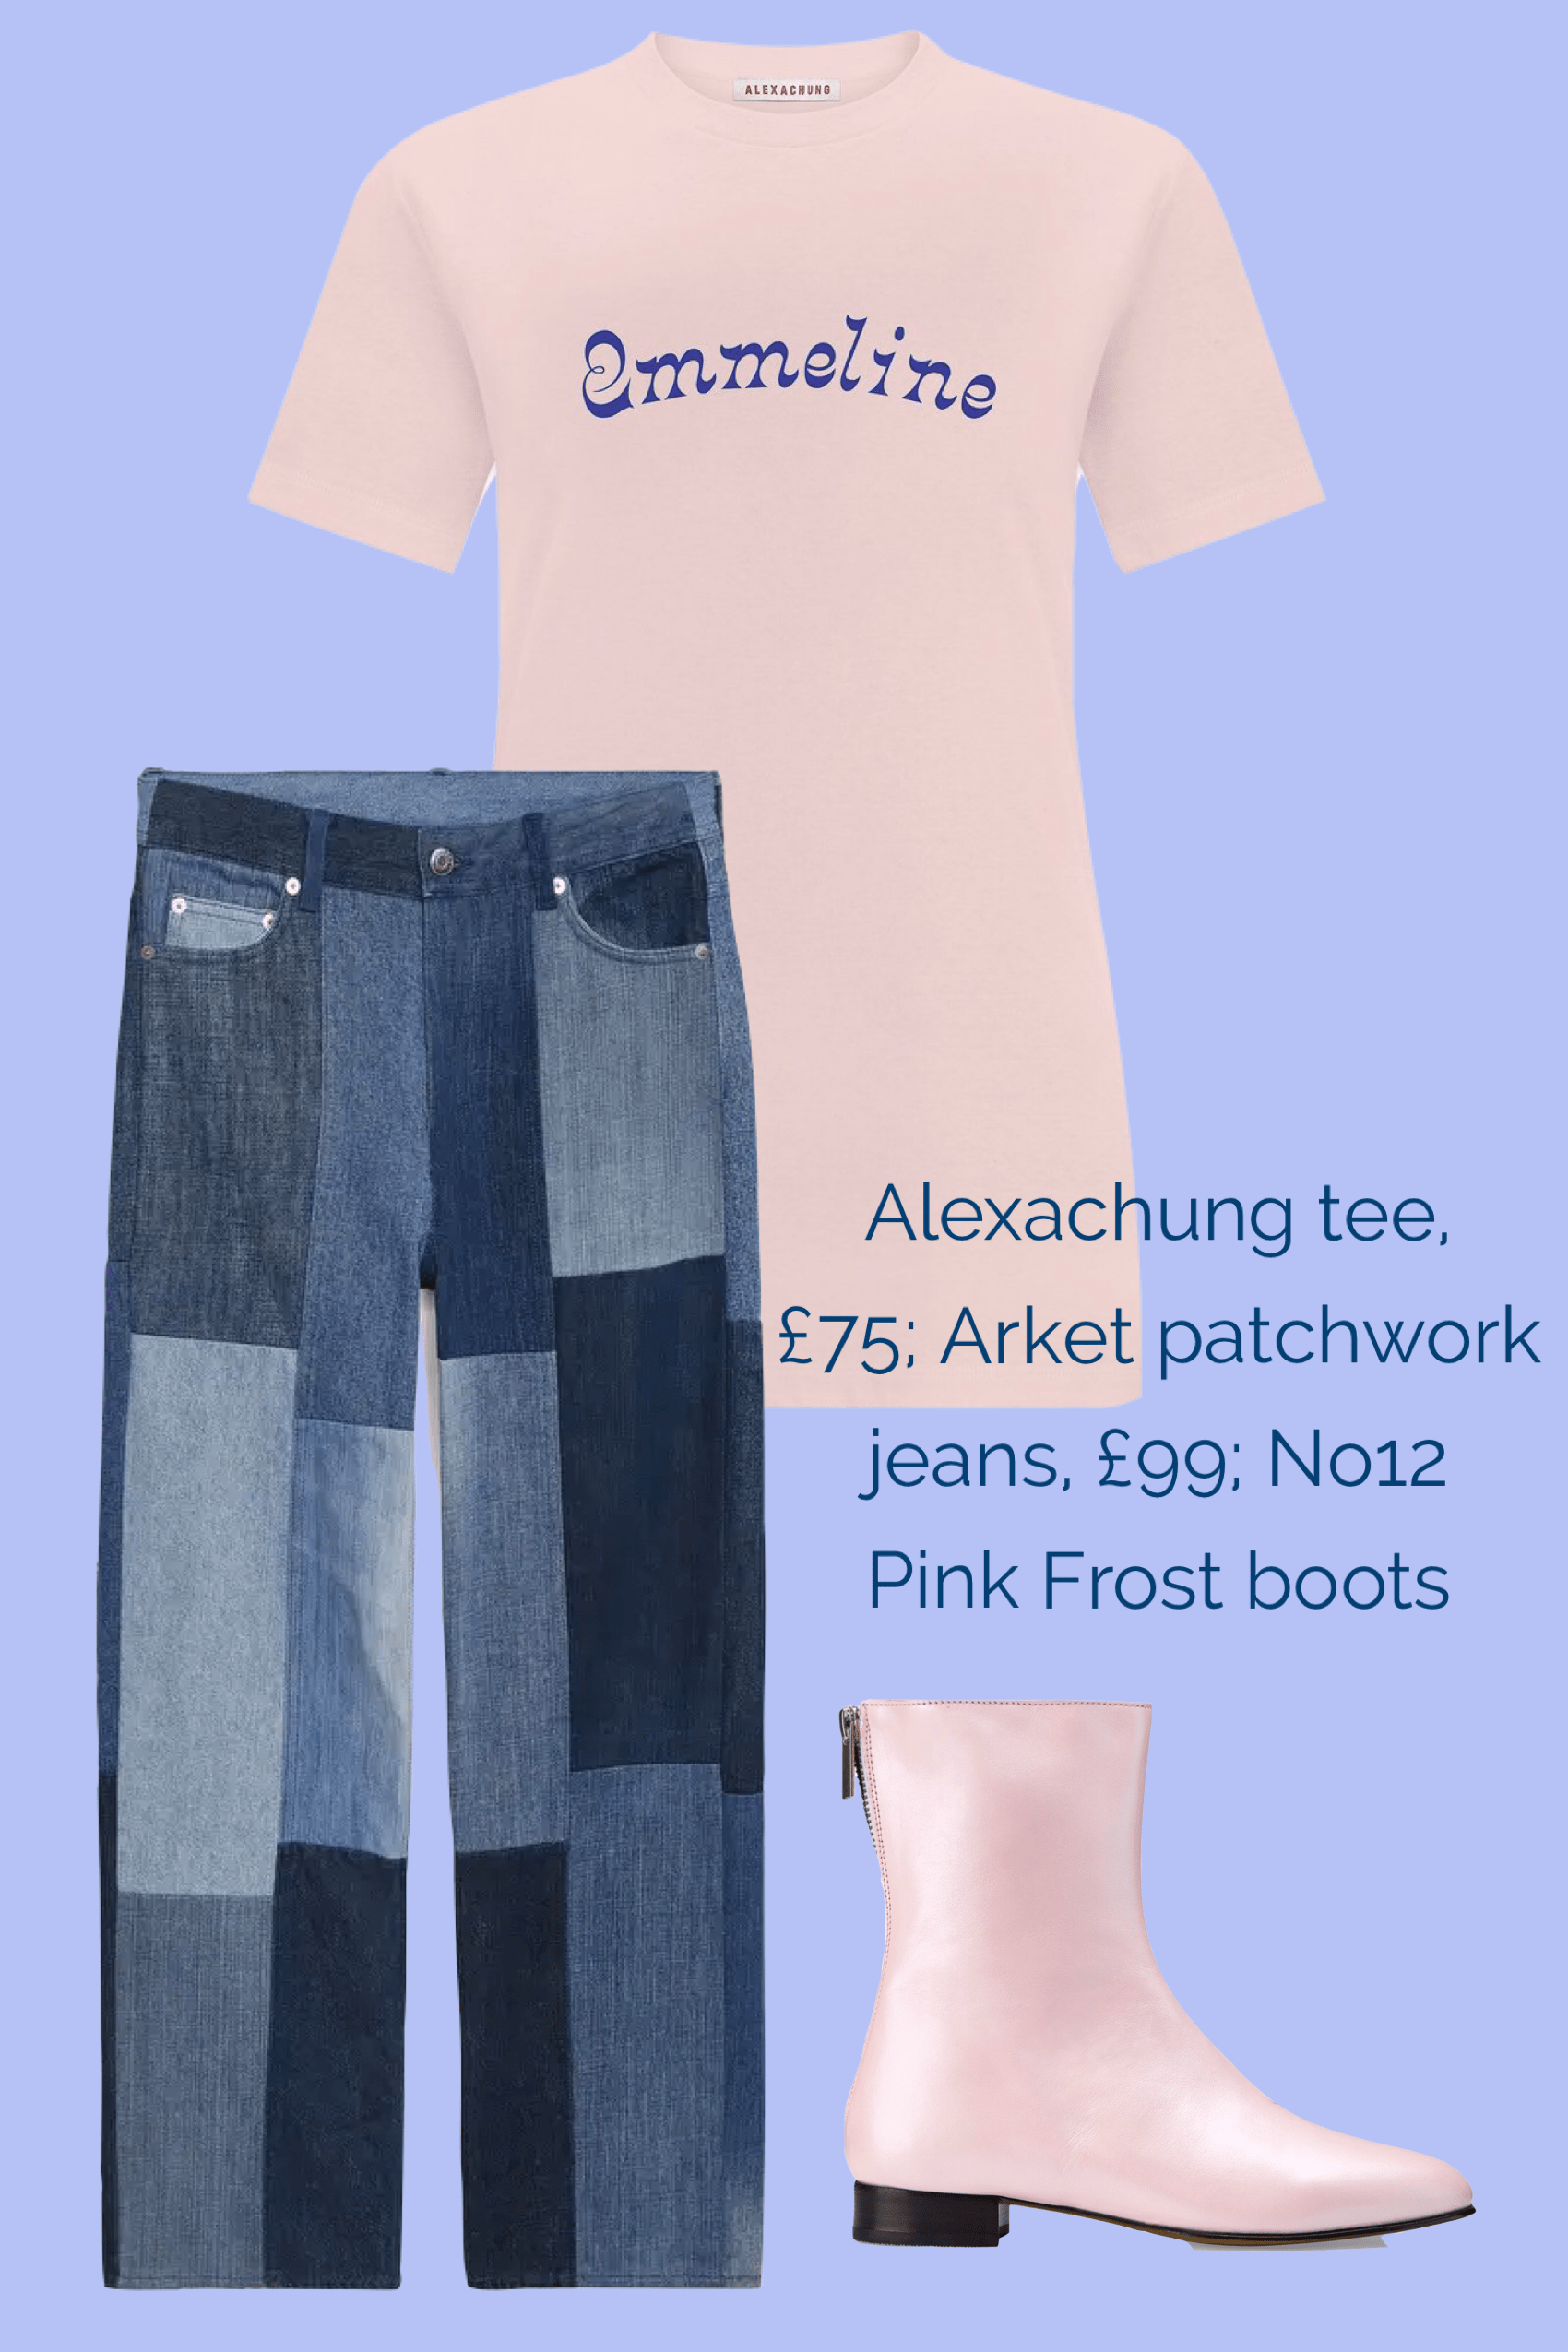 No12 Pink Frost boots teamed with Arket jeans and Alexa Chung T-shirt